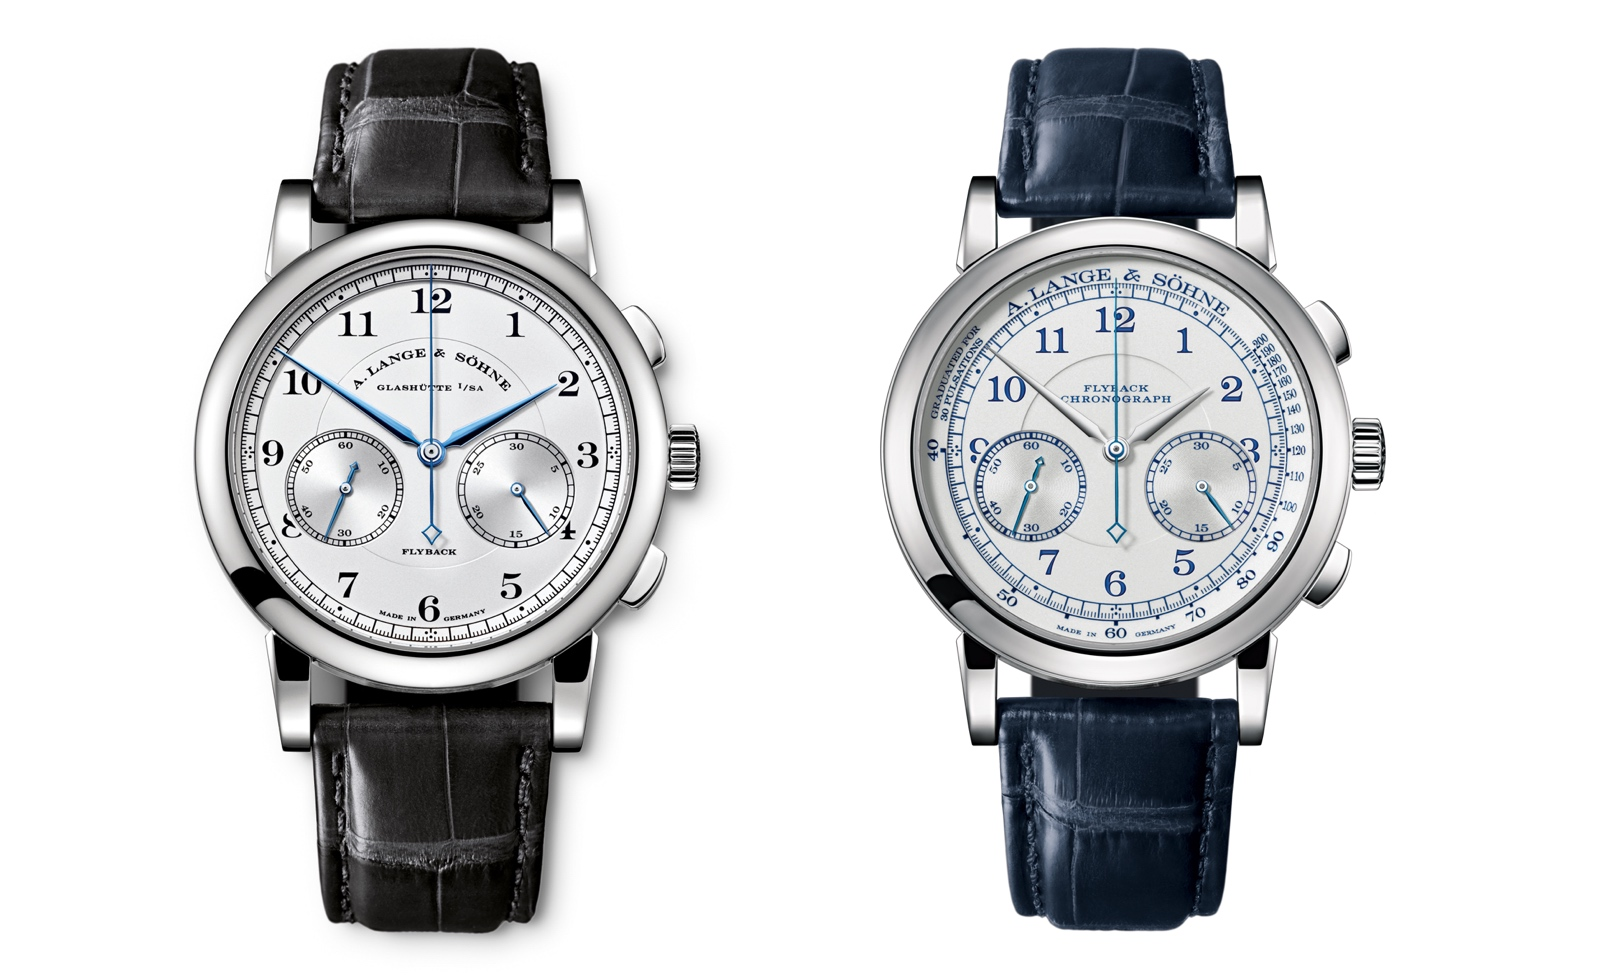 1815 Chronograph 402 vs 414